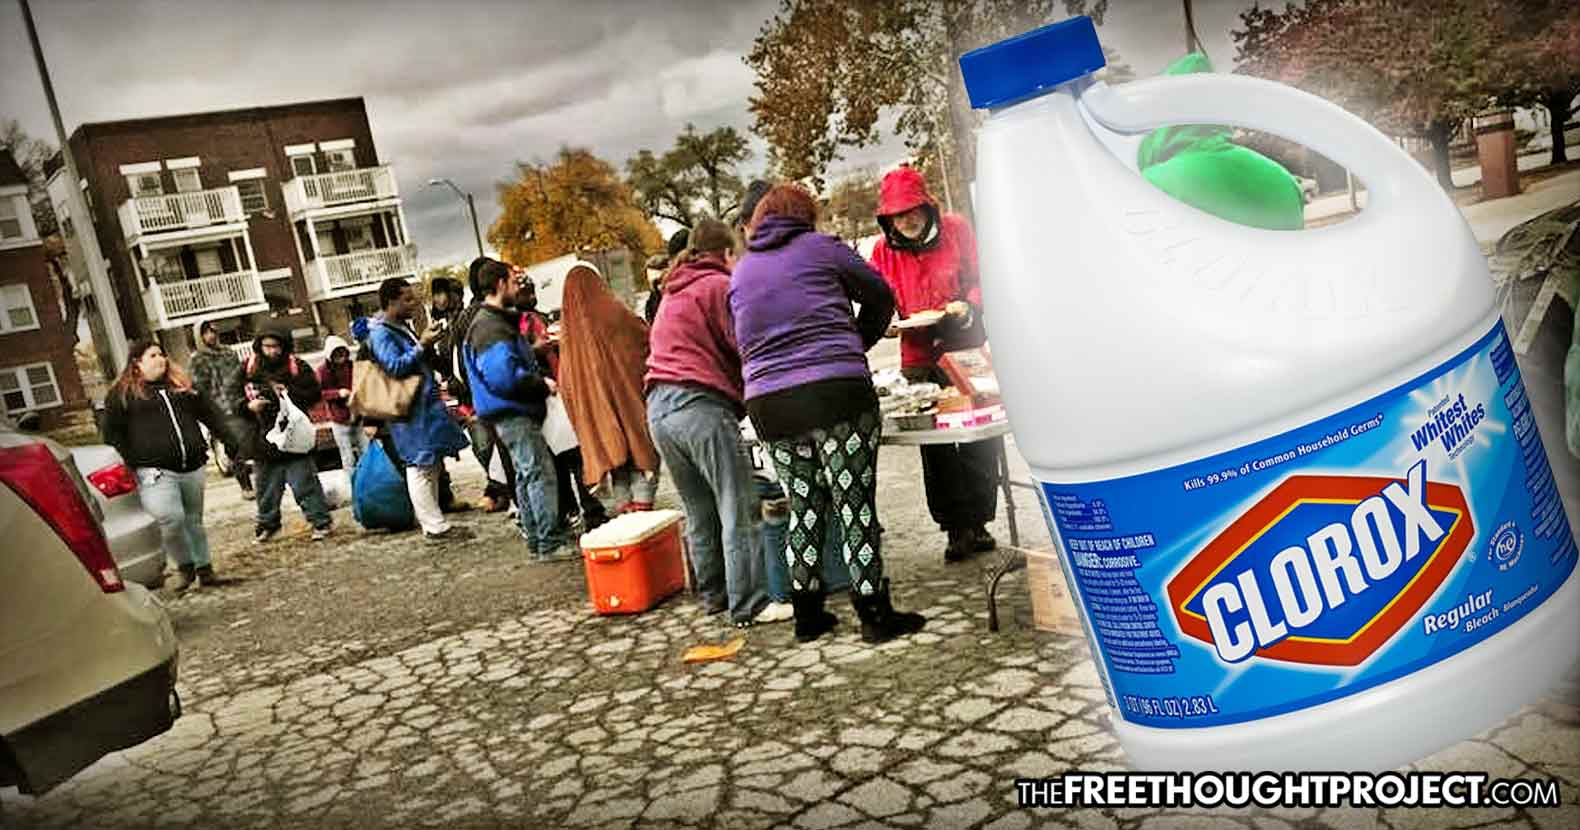 Gov't Denies Homeless People Food by Raiding Charity, Pouring Bleach on Food to Destroy It